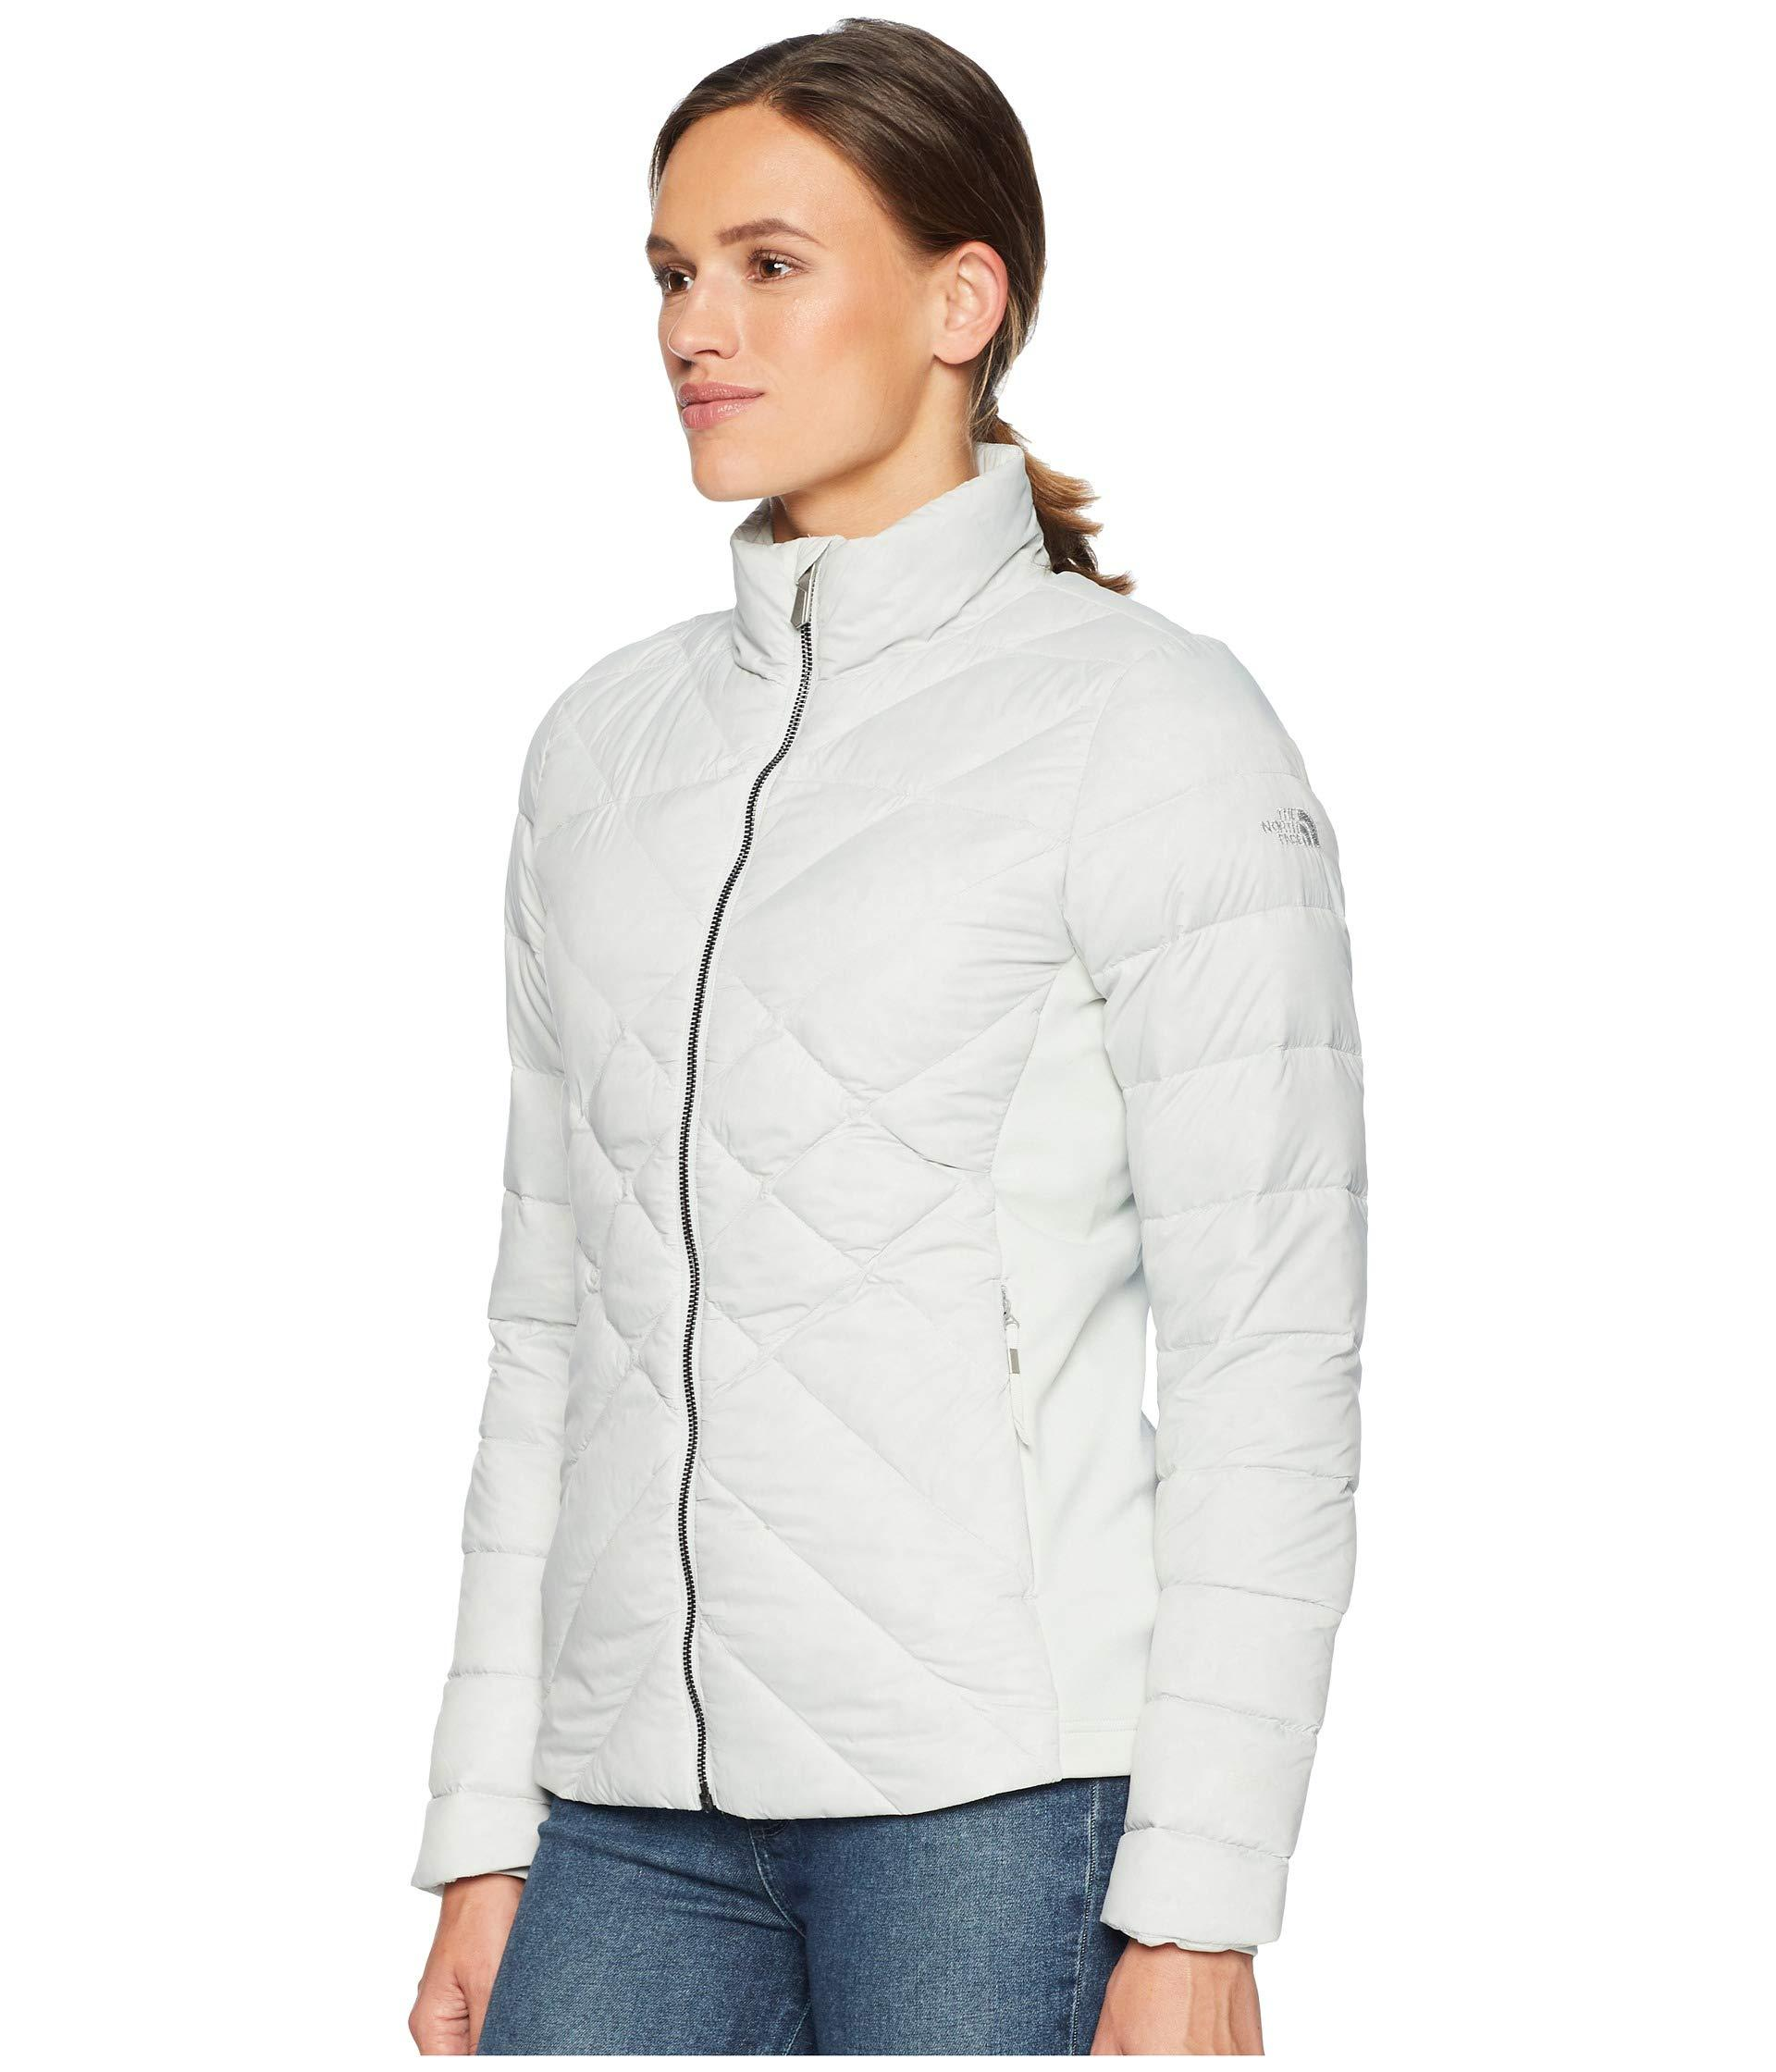 edbee3e44d4b Lyst - The North Face Lucia Hybrid Down Jacket in Gray - Save 18%